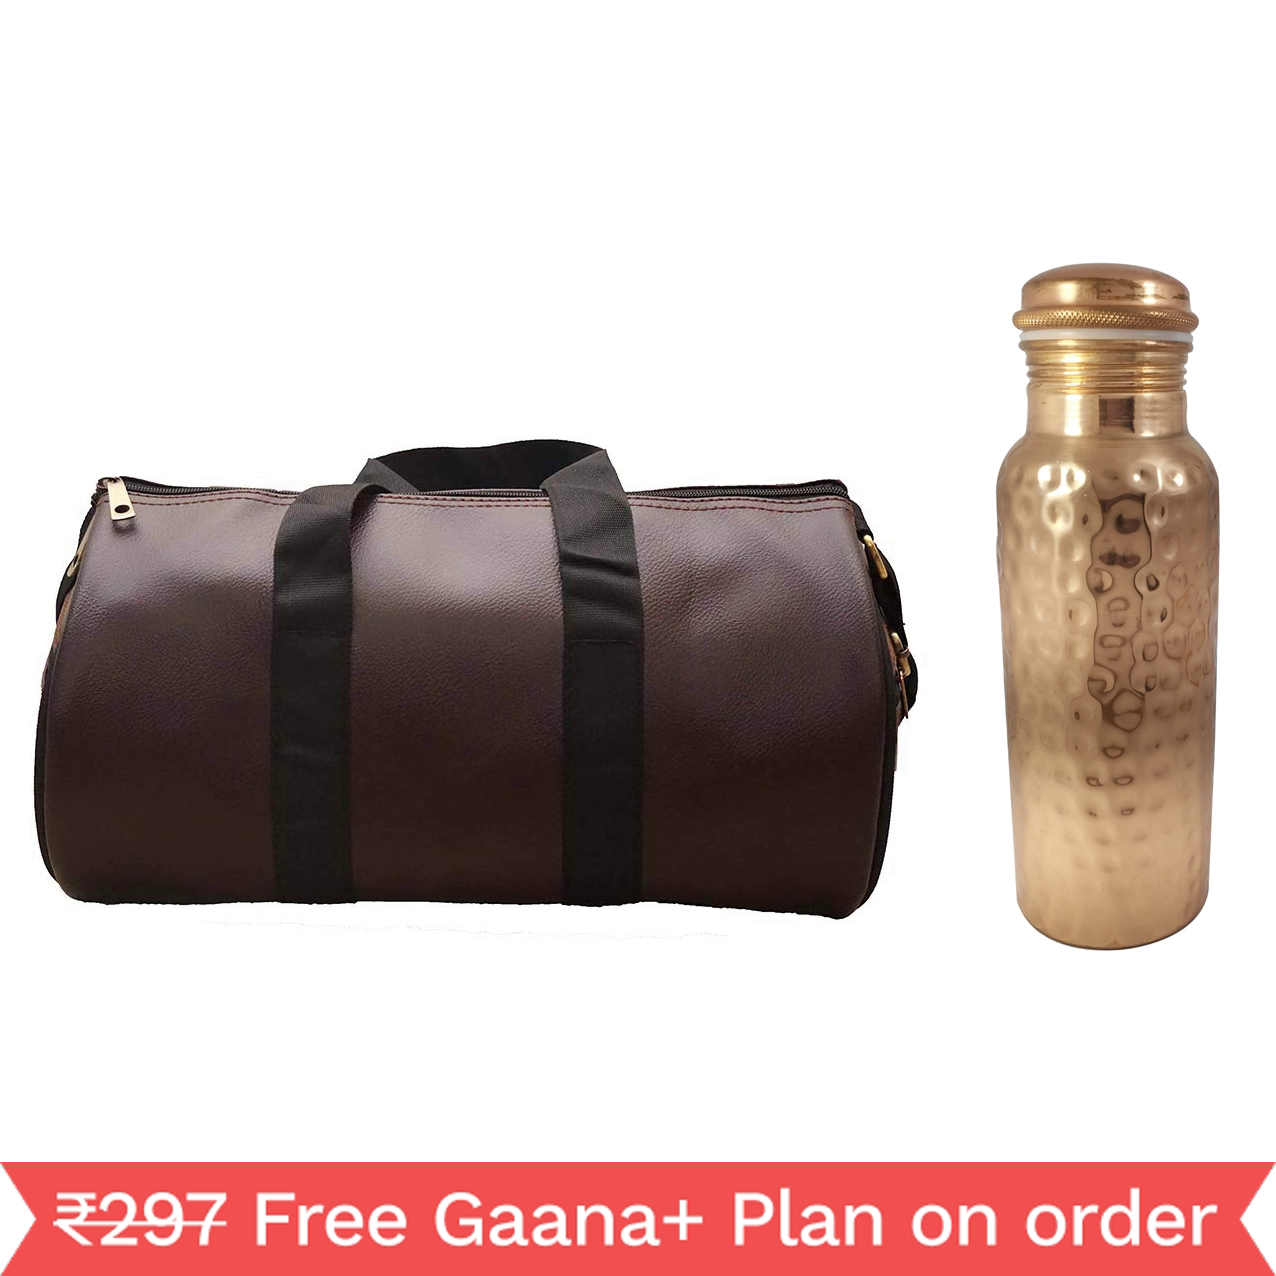 1 Copper 1000ml bottle & 1 Gym Bag - Diamond  1000 GymBag Dark Brown